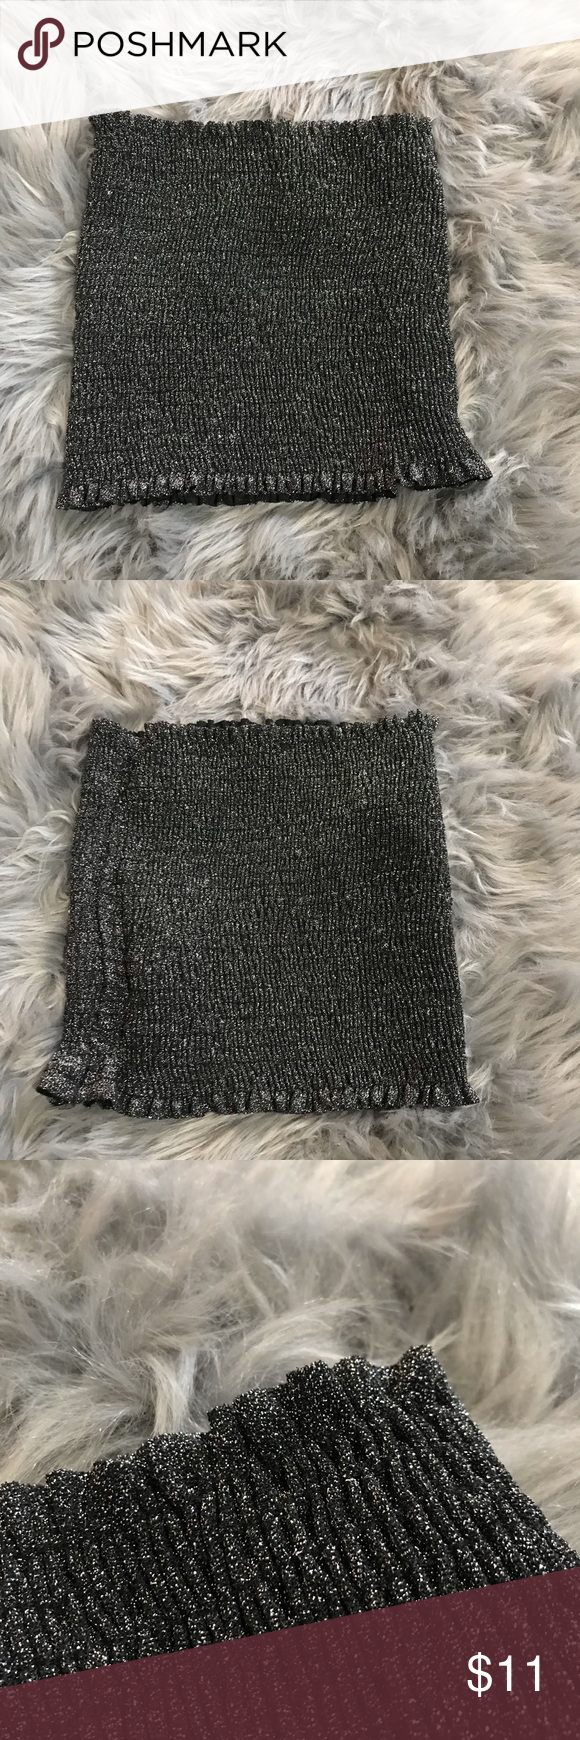 89558d61da8 Black sparkly tube top✨ Black tube top with silver sparkles Scrunch  material